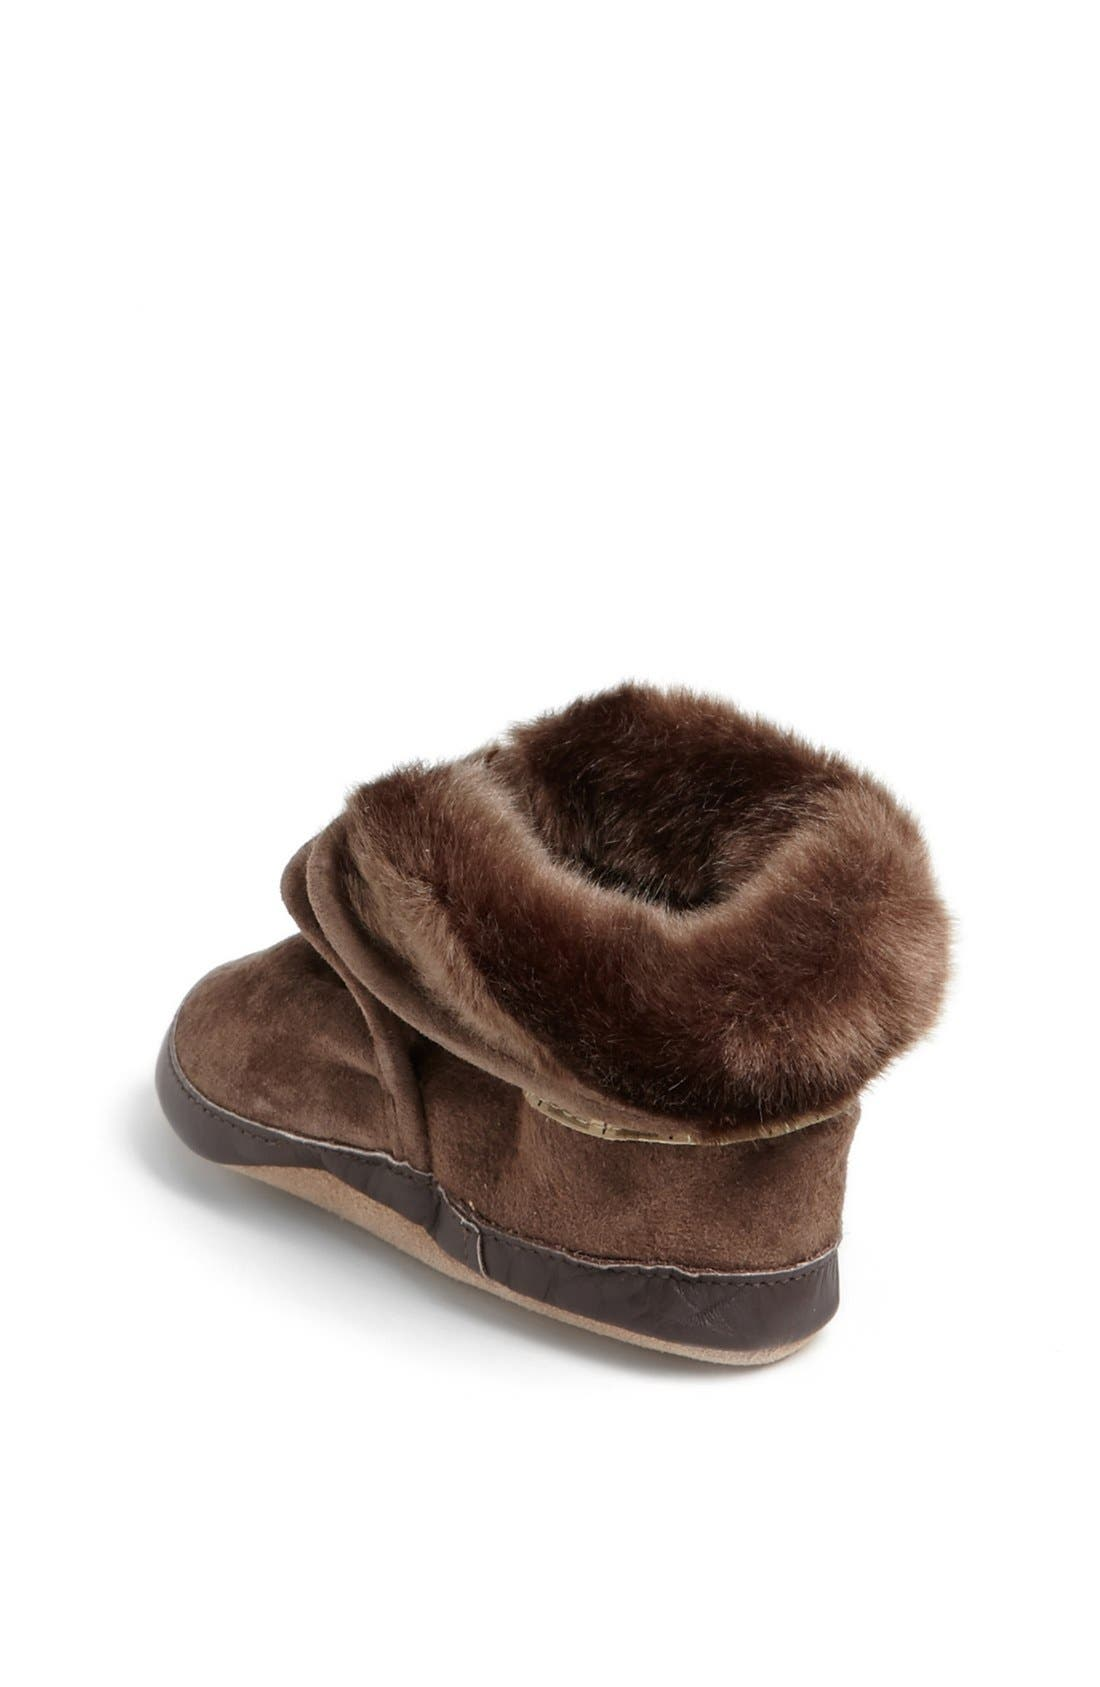 'Cozy' Ankle Bootie,                             Alternate thumbnail 2, color,                             Brown